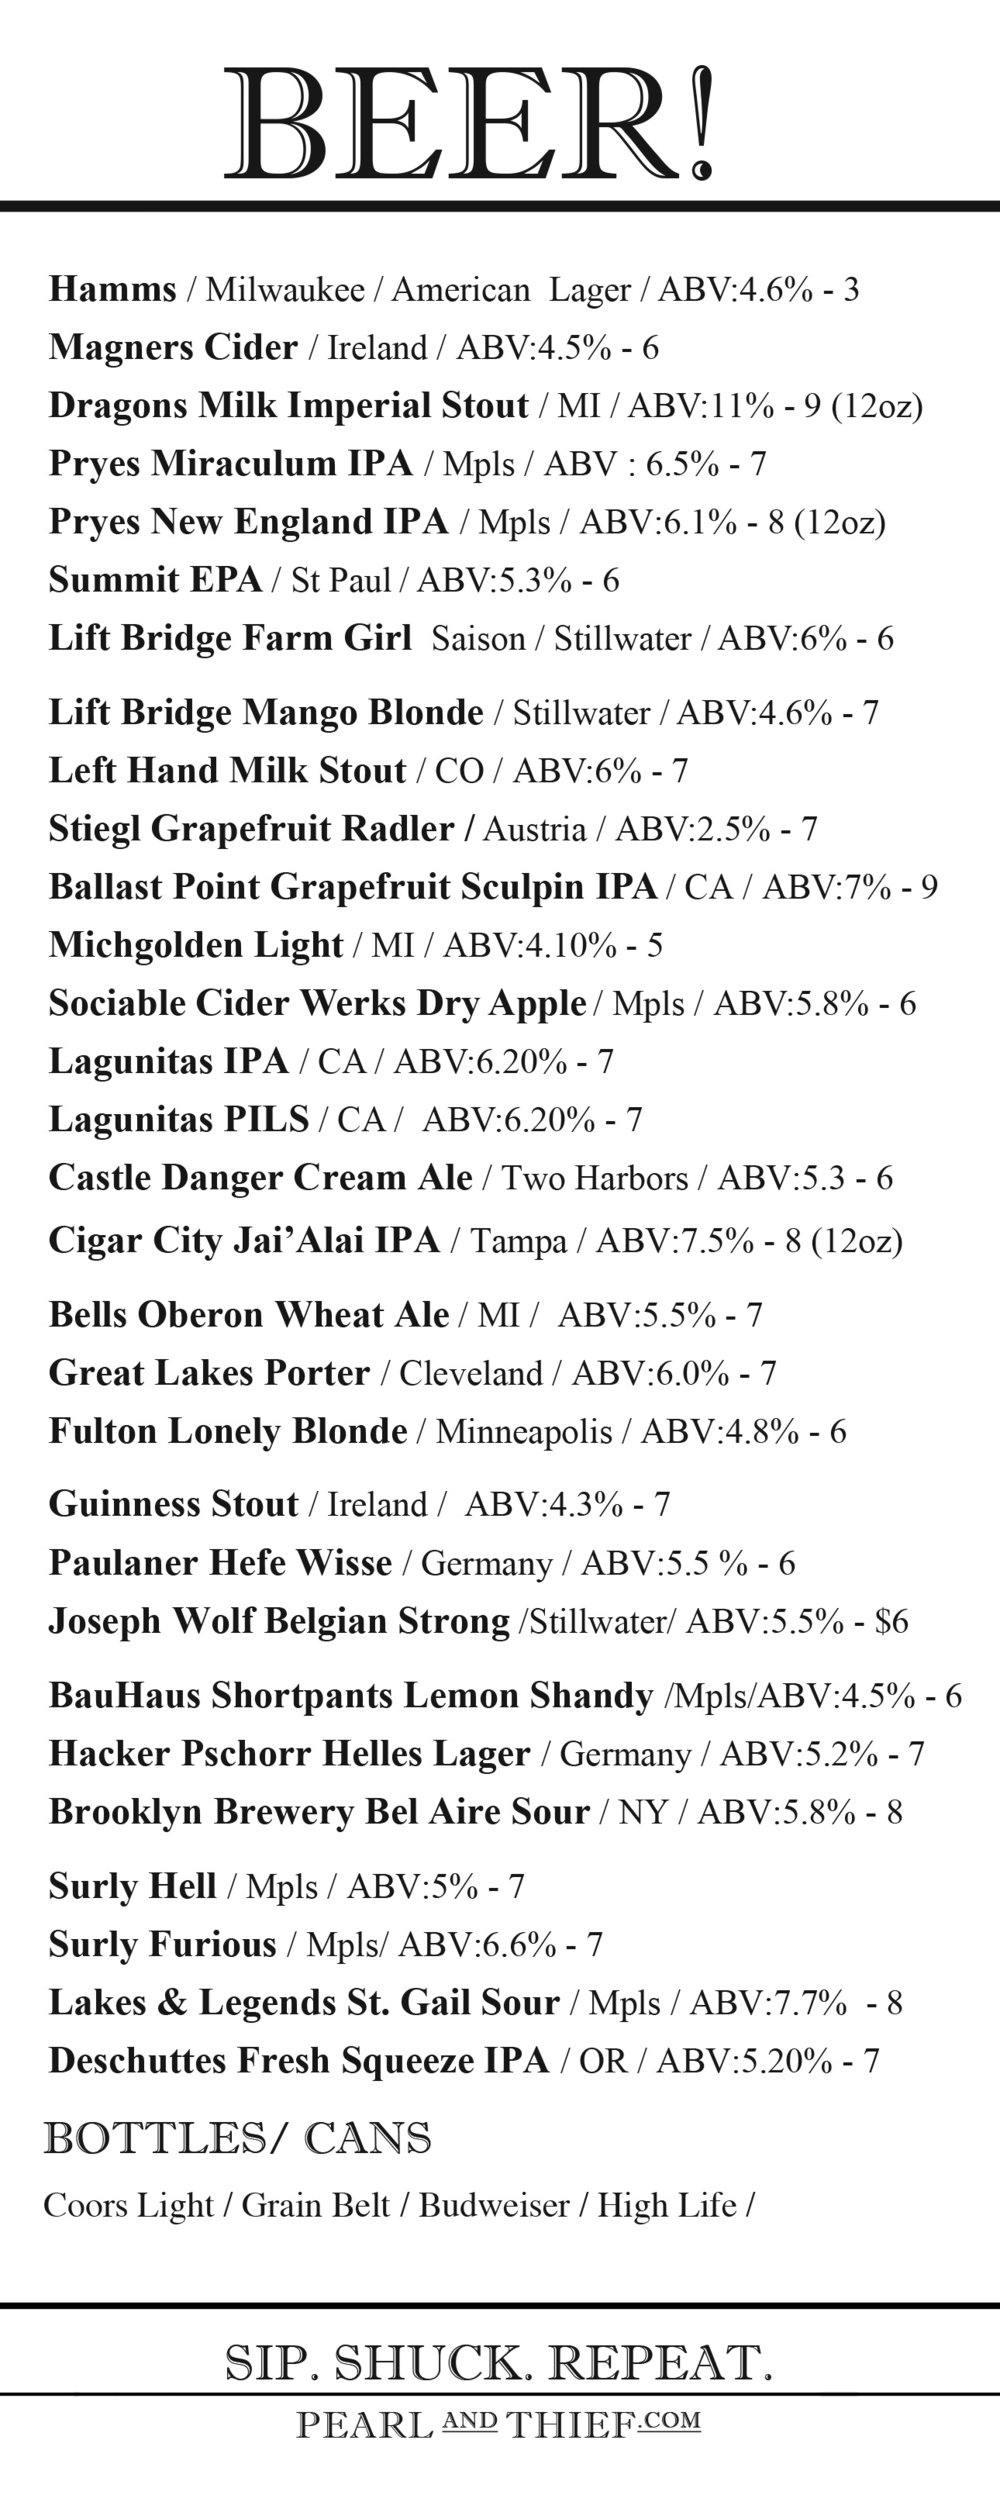 Beer list update 06.21.18.jpg